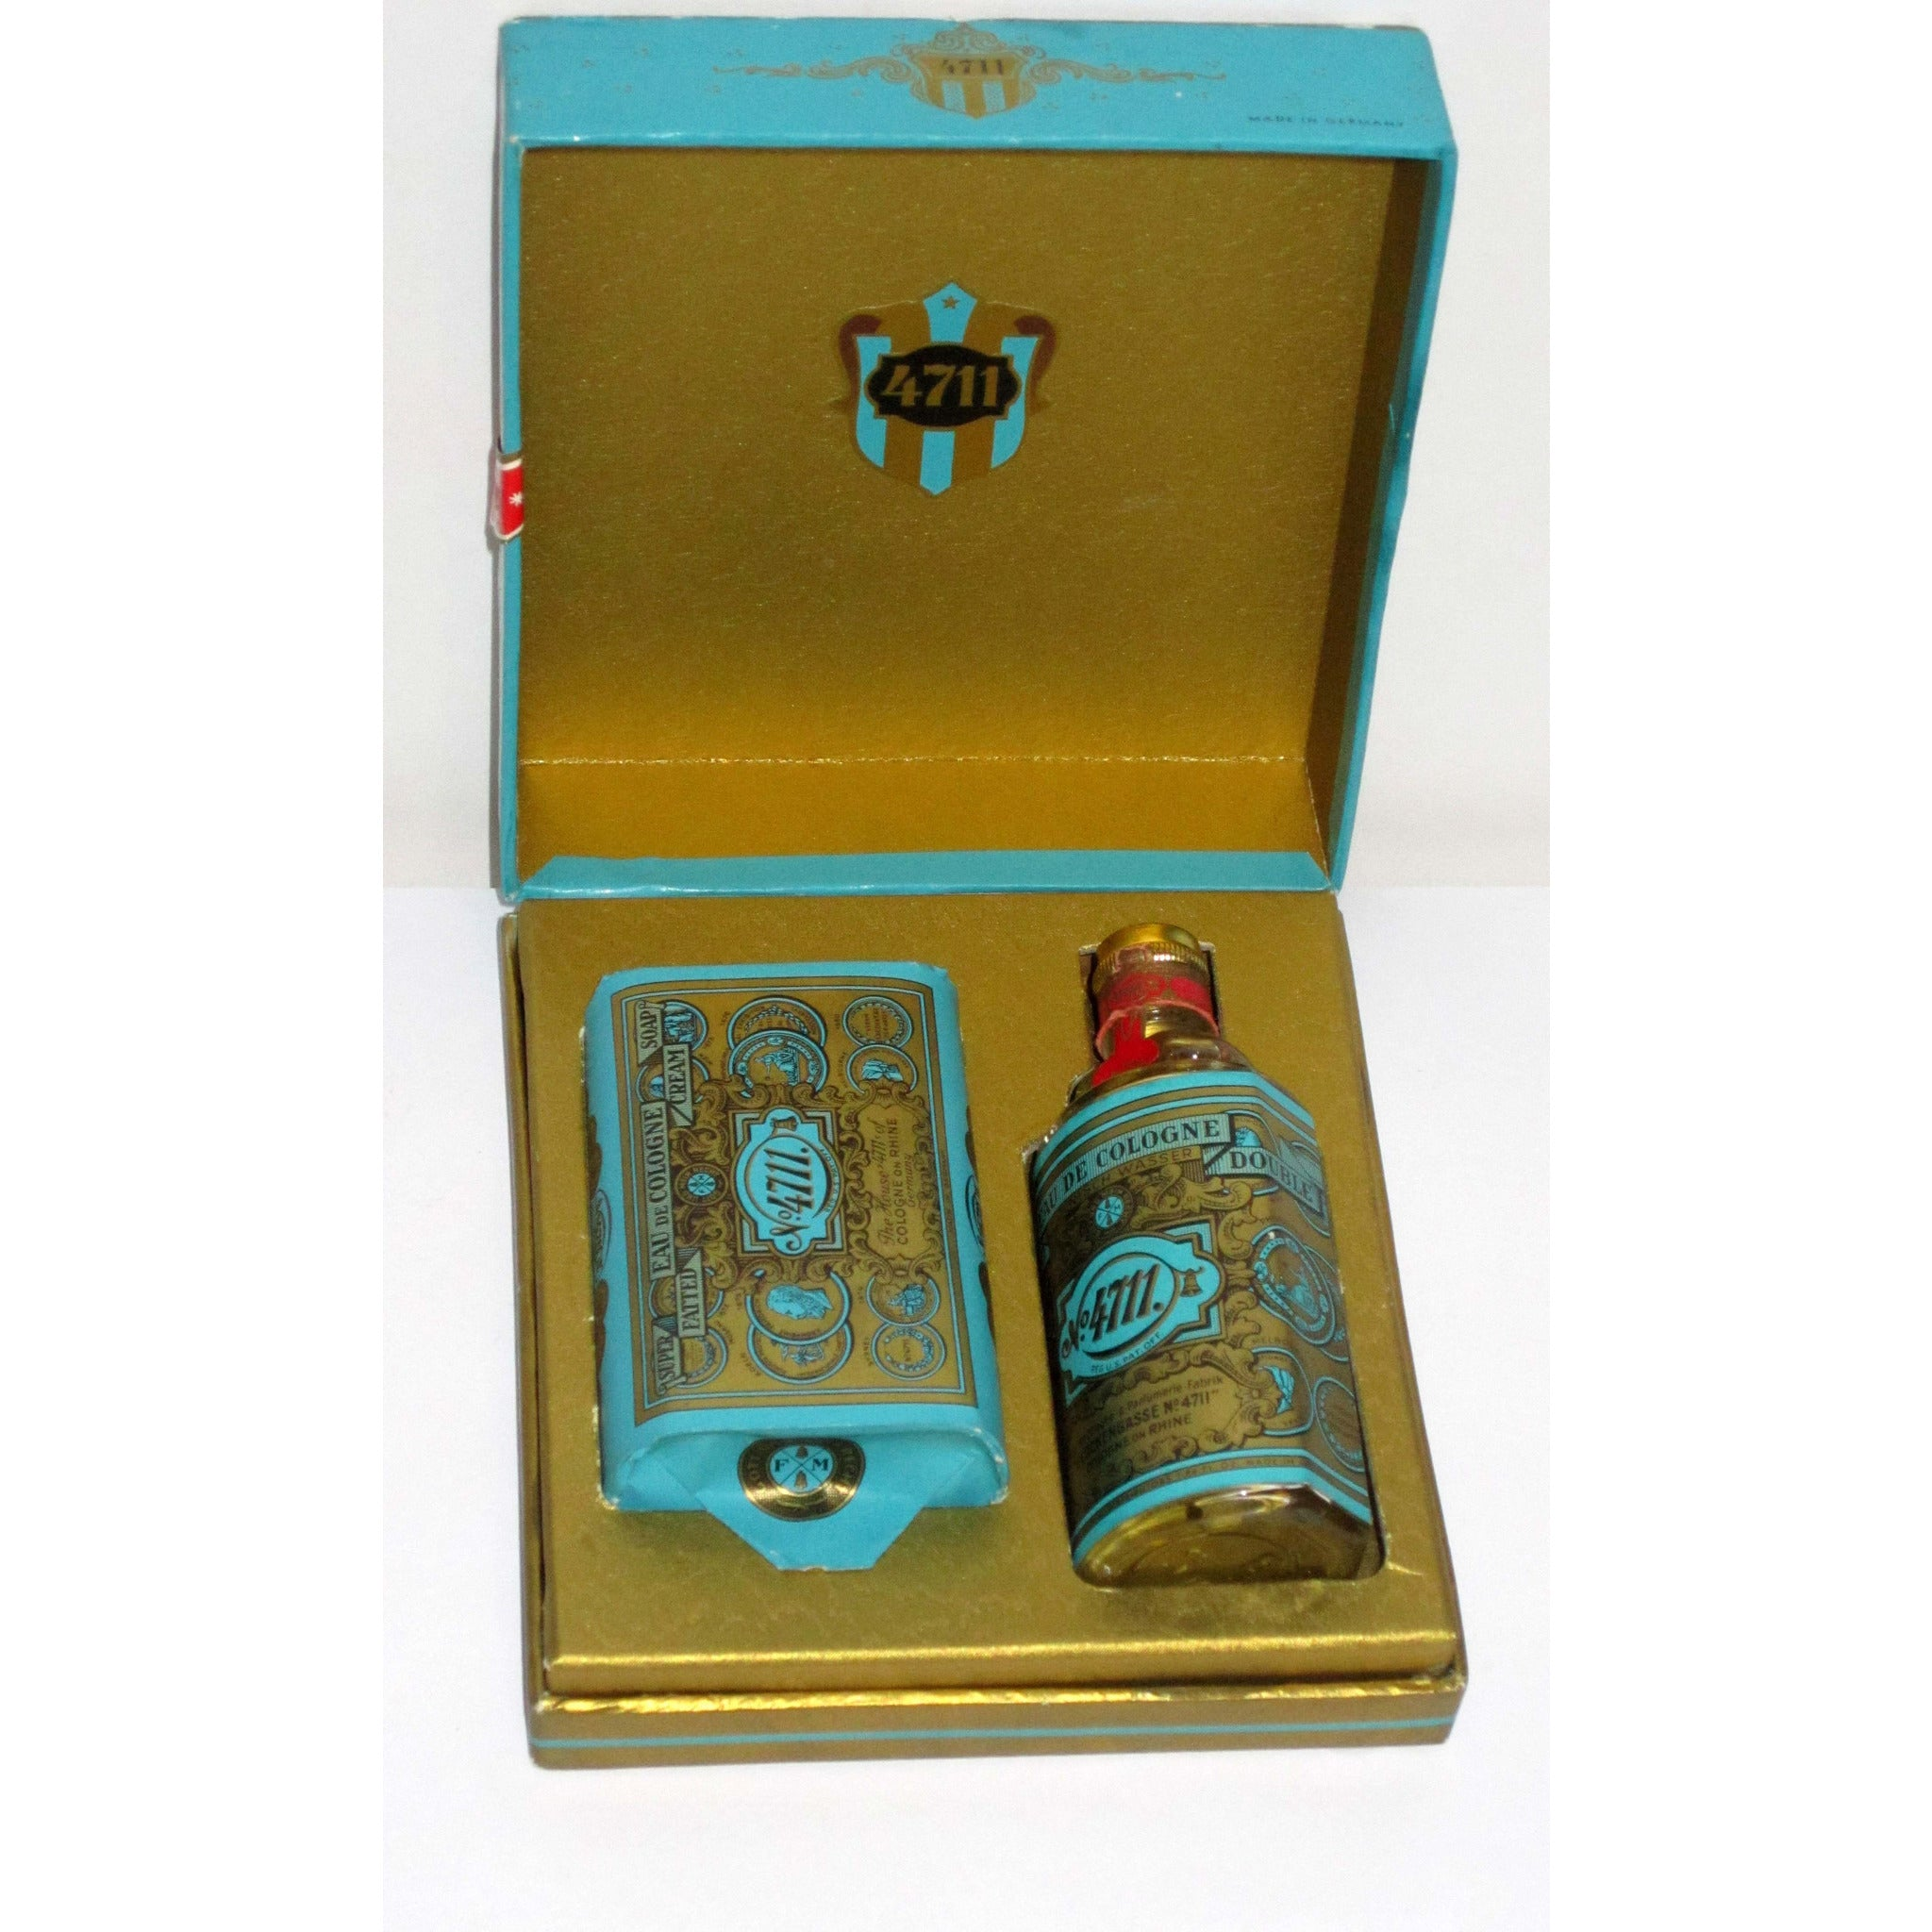 Vintage No. 4711 Fragrance Gift Set By Glockengasse